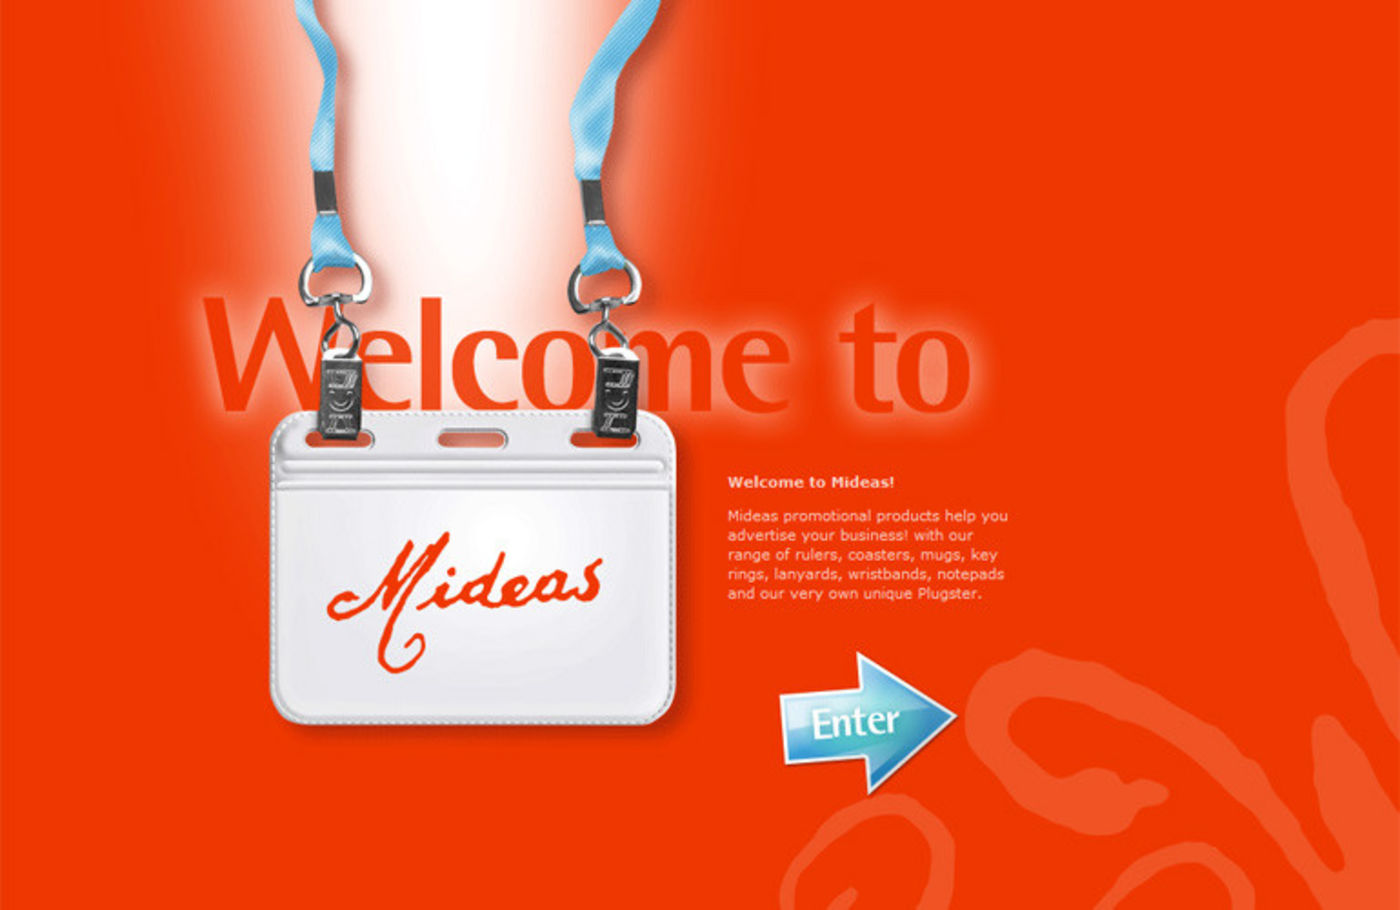 Mideas Welcome